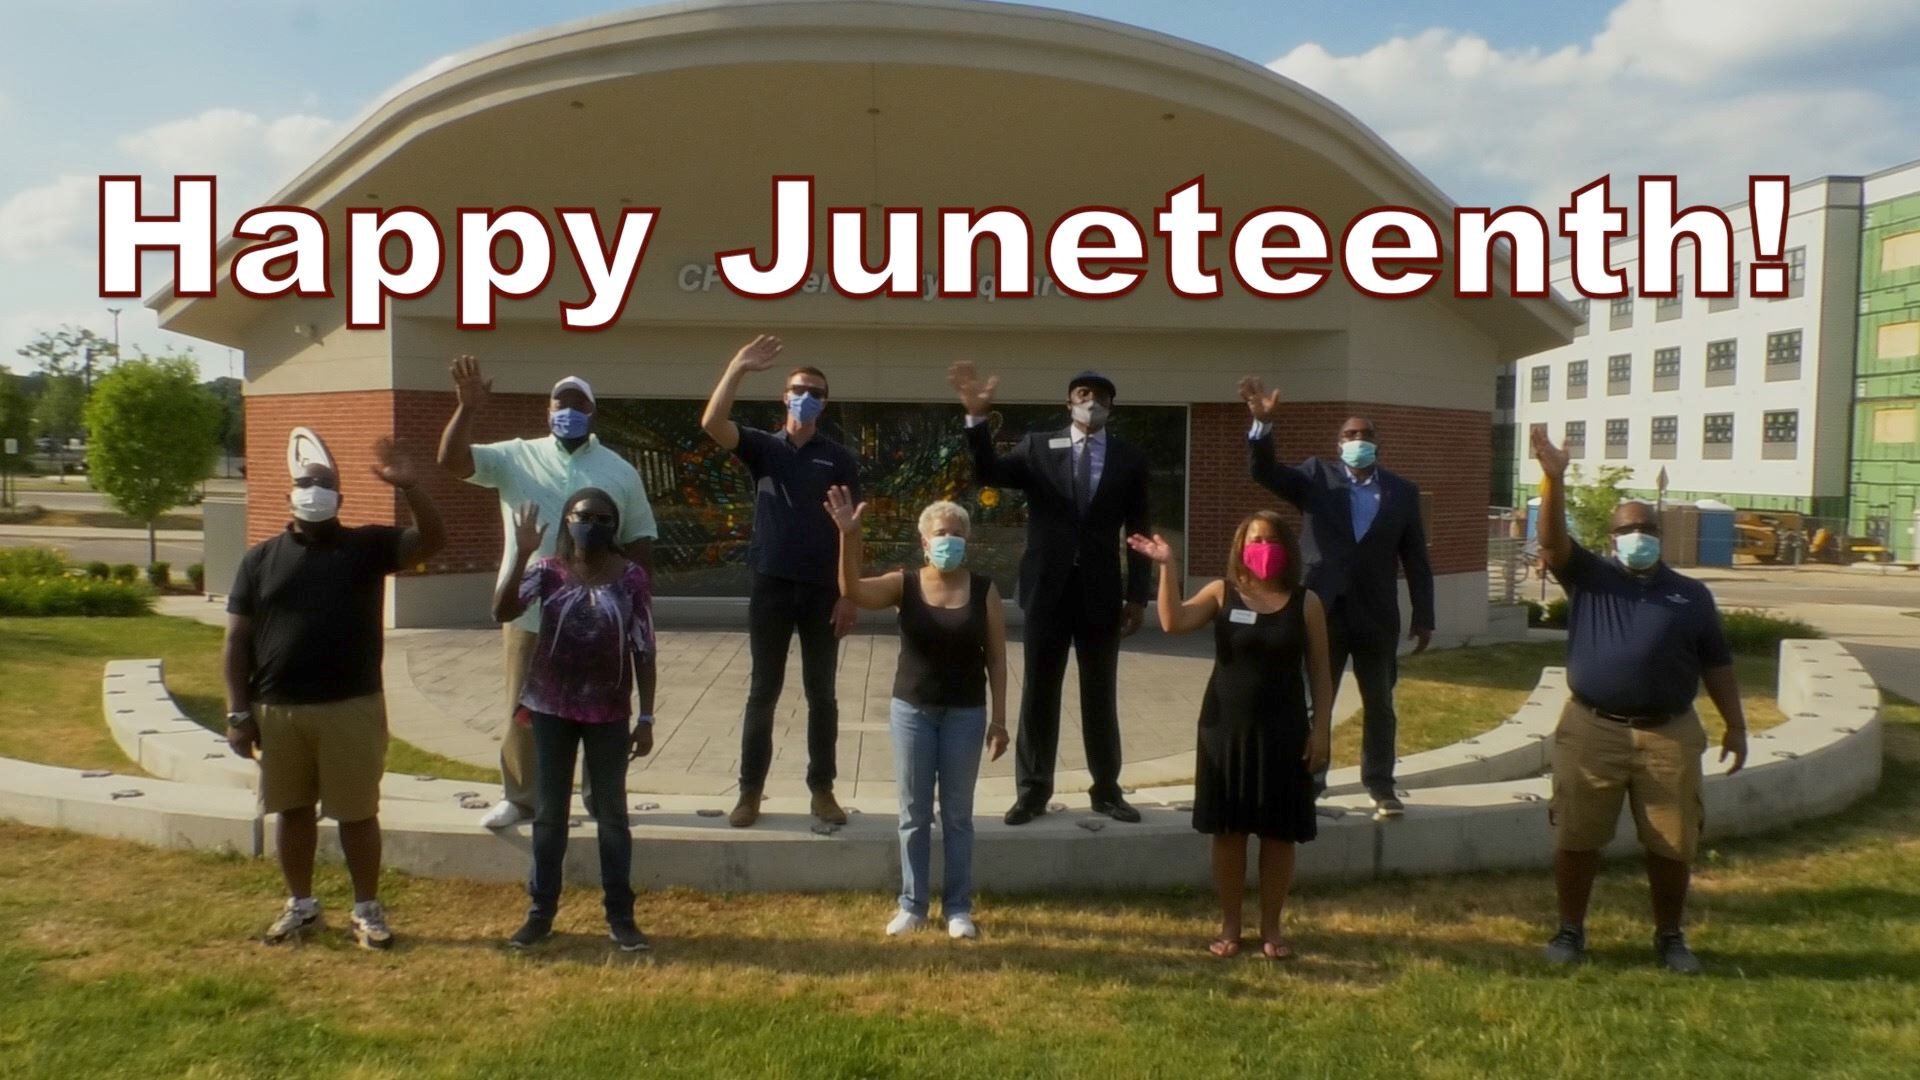 Happy Juneteenth still